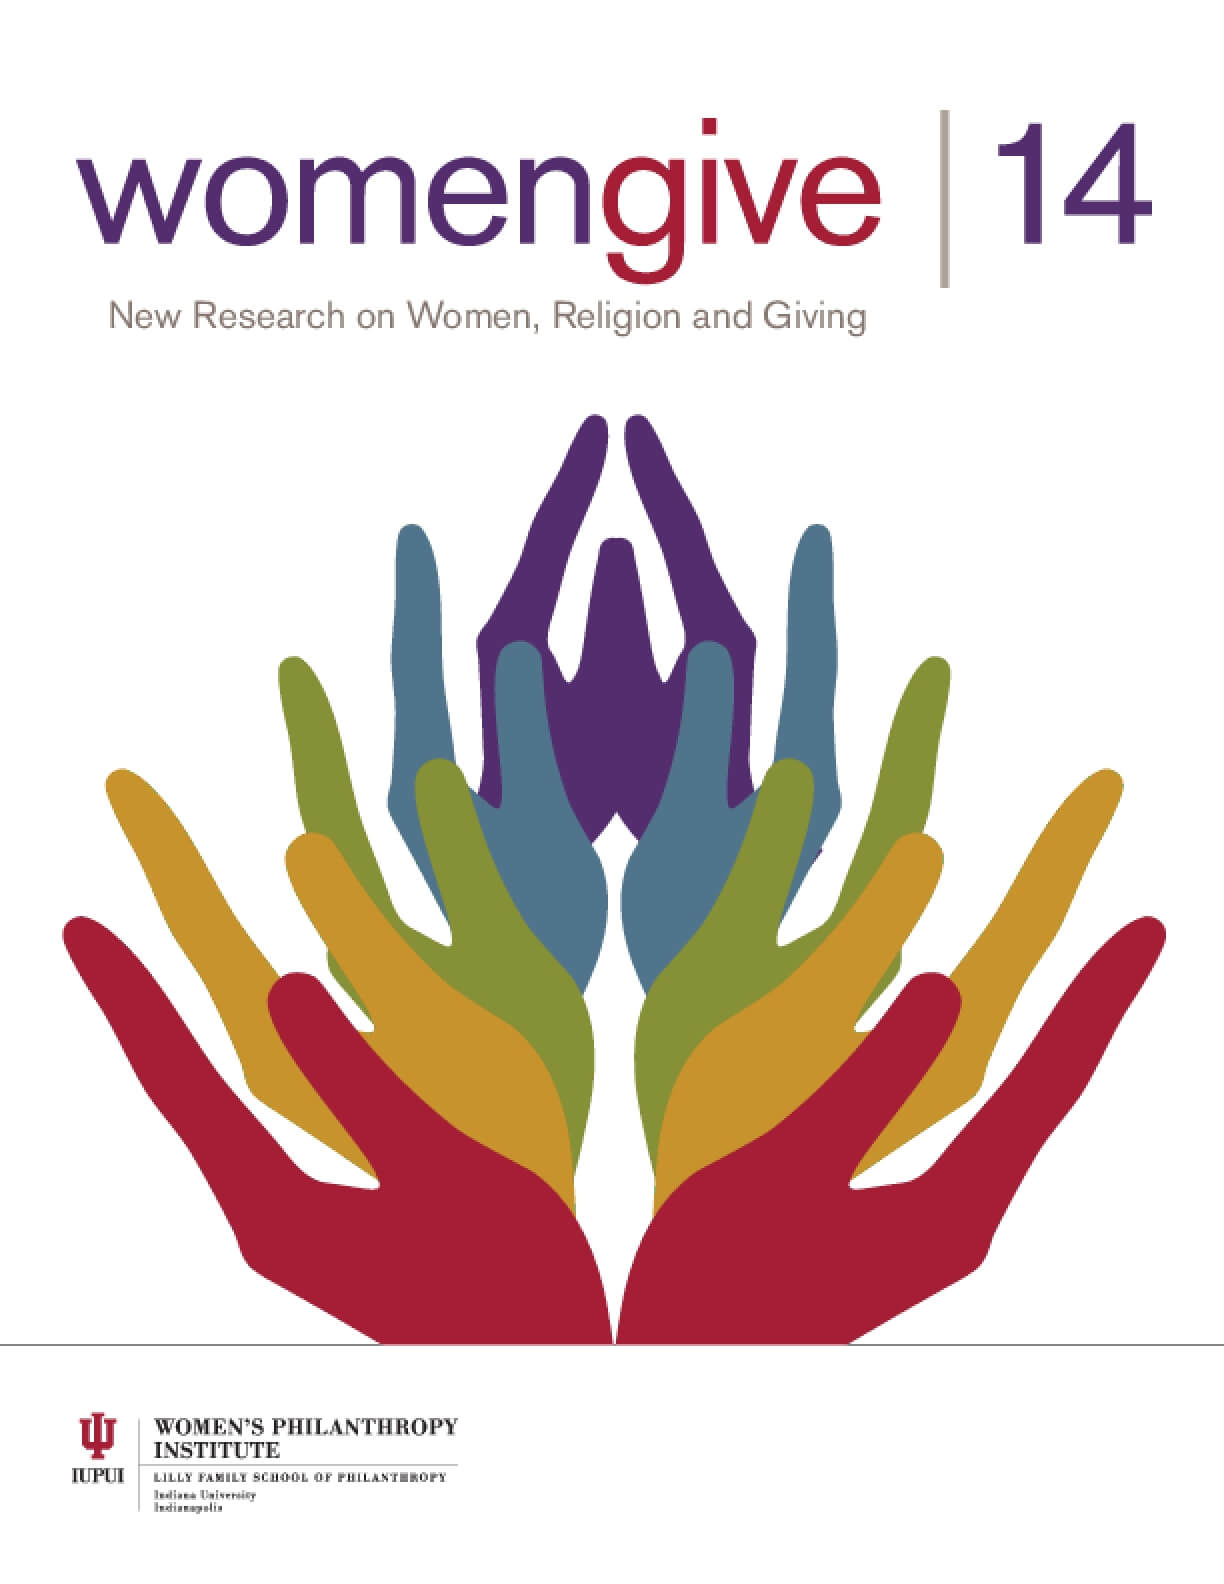 Women Give 2014: New Research on Women, Religion, and Giving